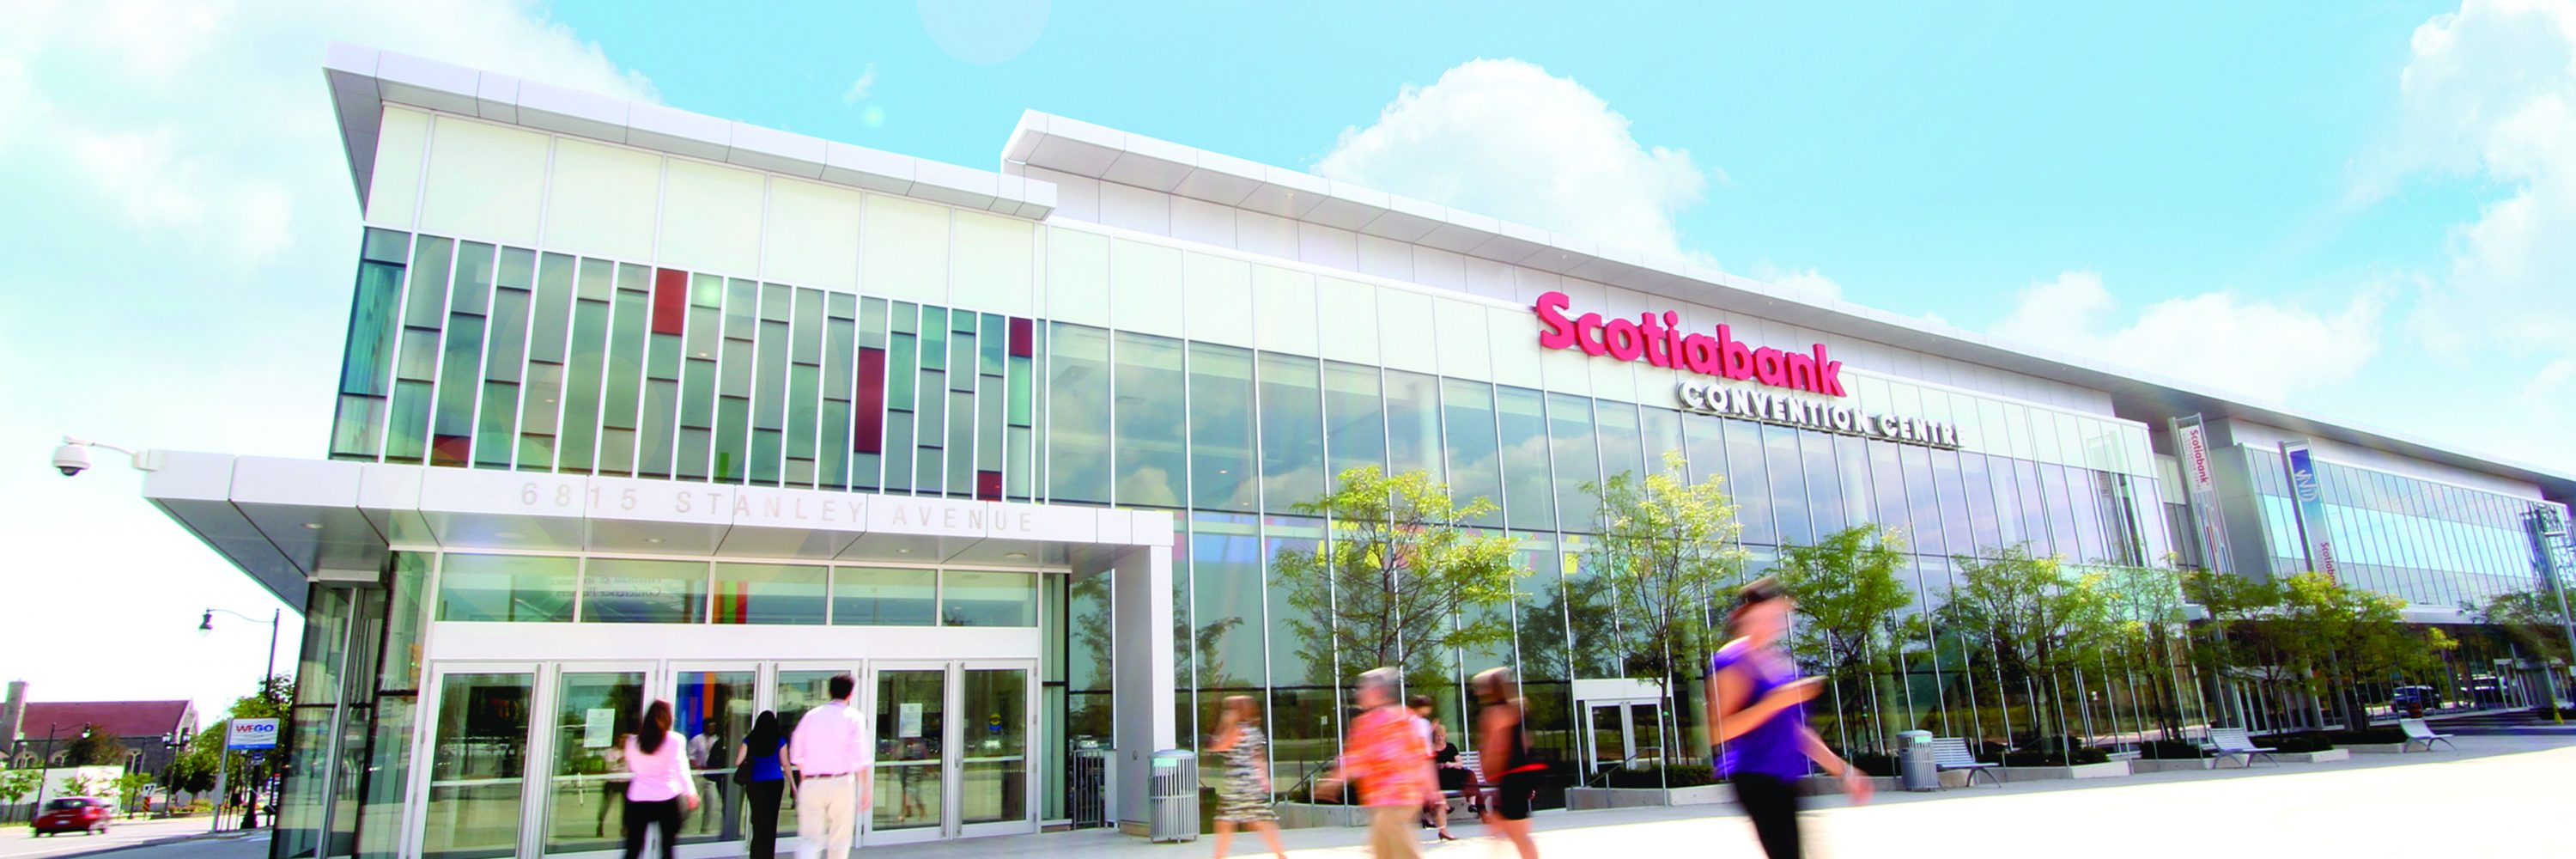 Scotiabank Convention Centre (SCCN) in Niagara Falls